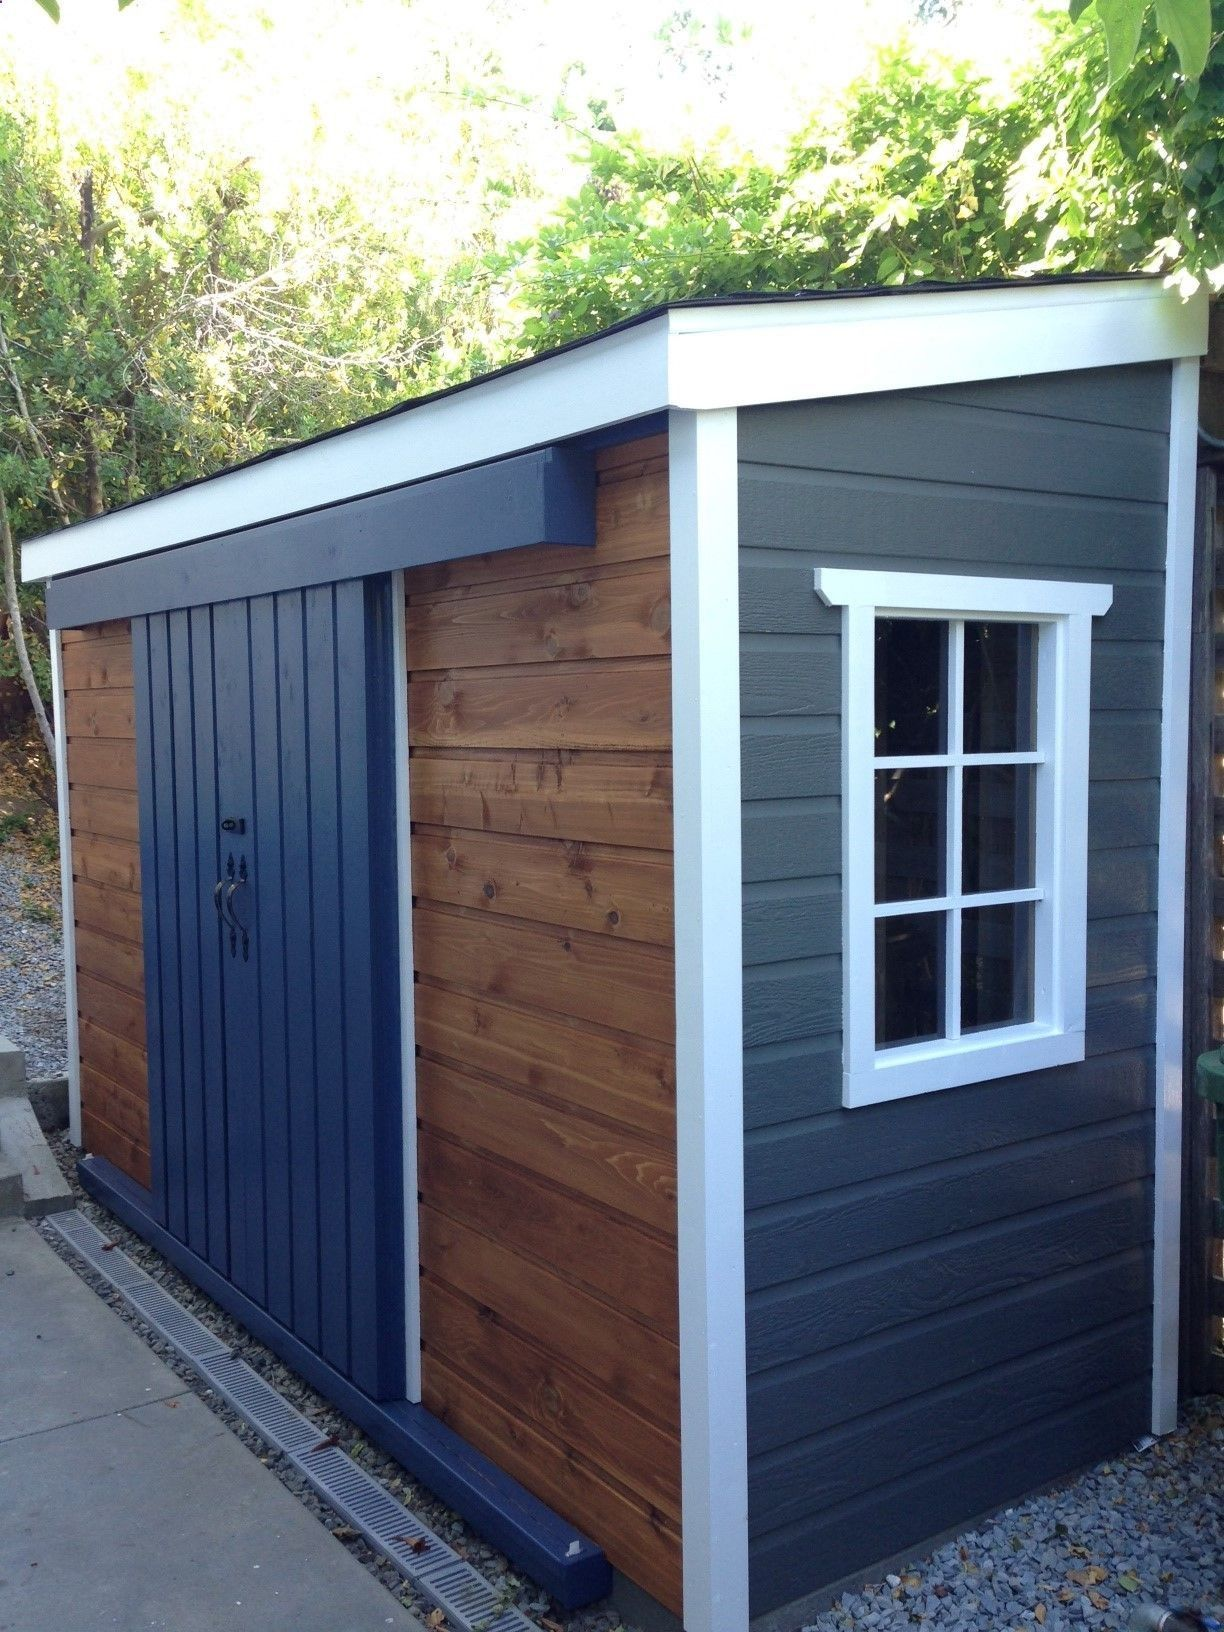 Shed Plans   Lean To Shed|garden Shed|backyard Shed| Leaning Shed   Now You  Can Build ANY Shed In A Weekend Even If Youu0027ve Zero Woodworking Experience!